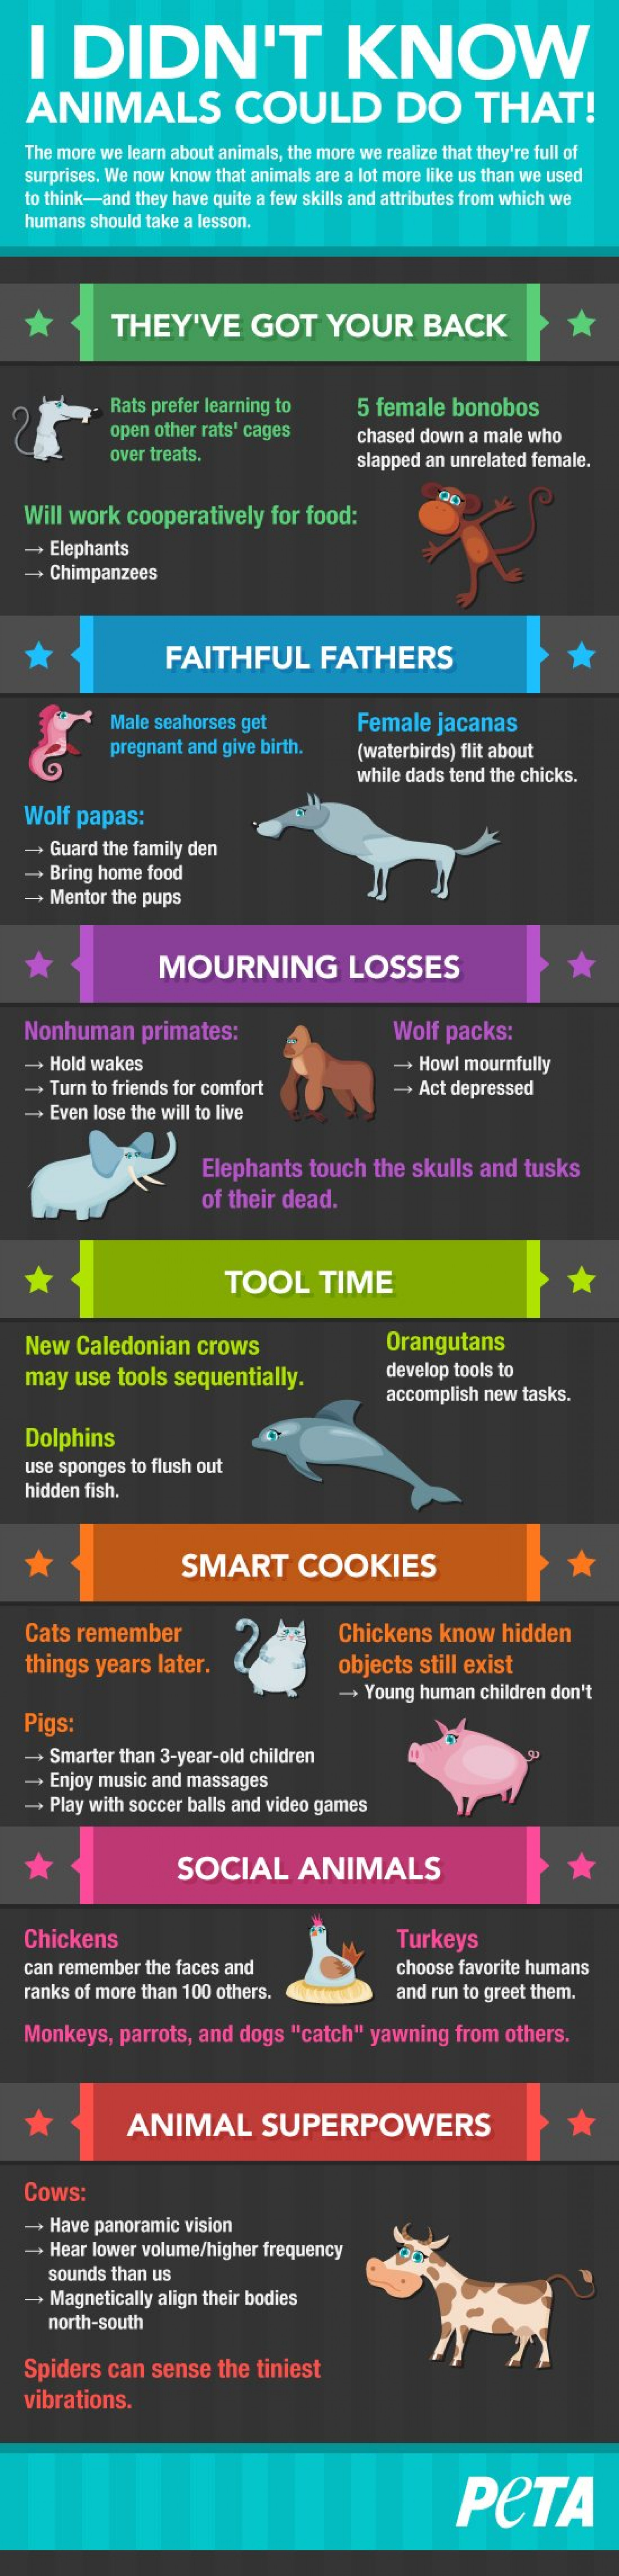 I Didn't Know Animals Could Do That! Infographic